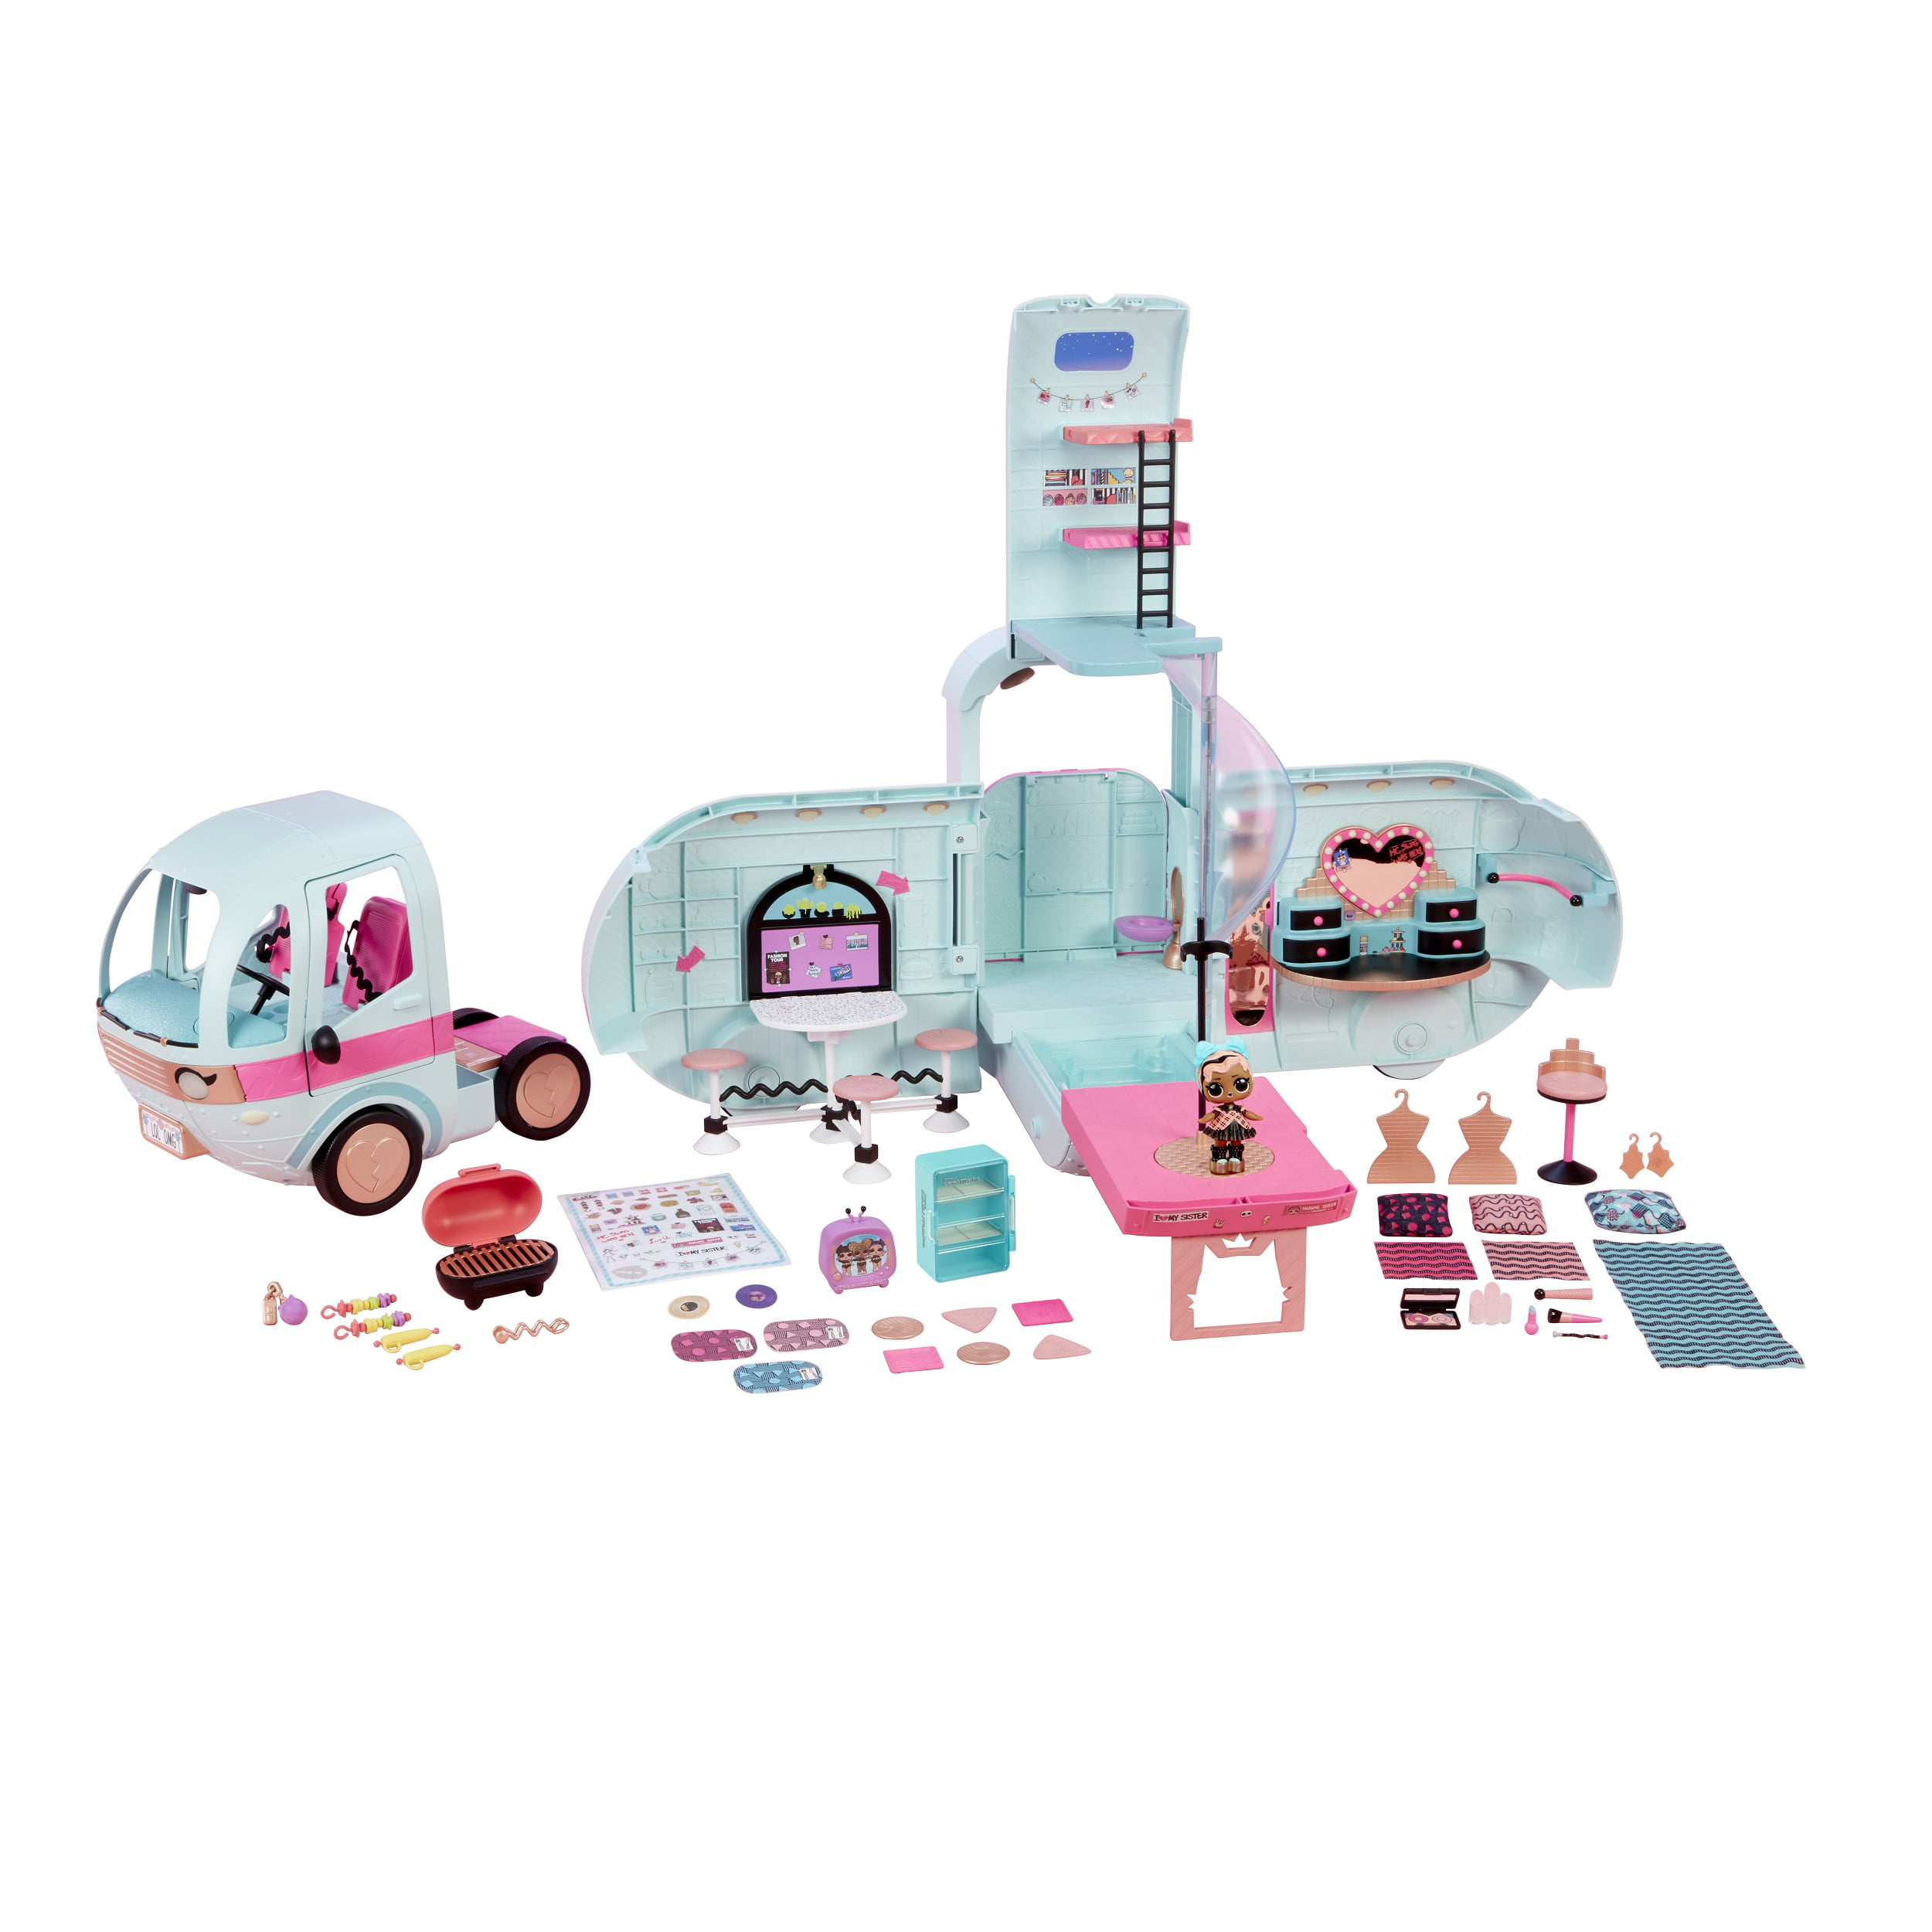 L O L Surprise 2 In 1 Glamper Fashion Camper With 55 Surprises